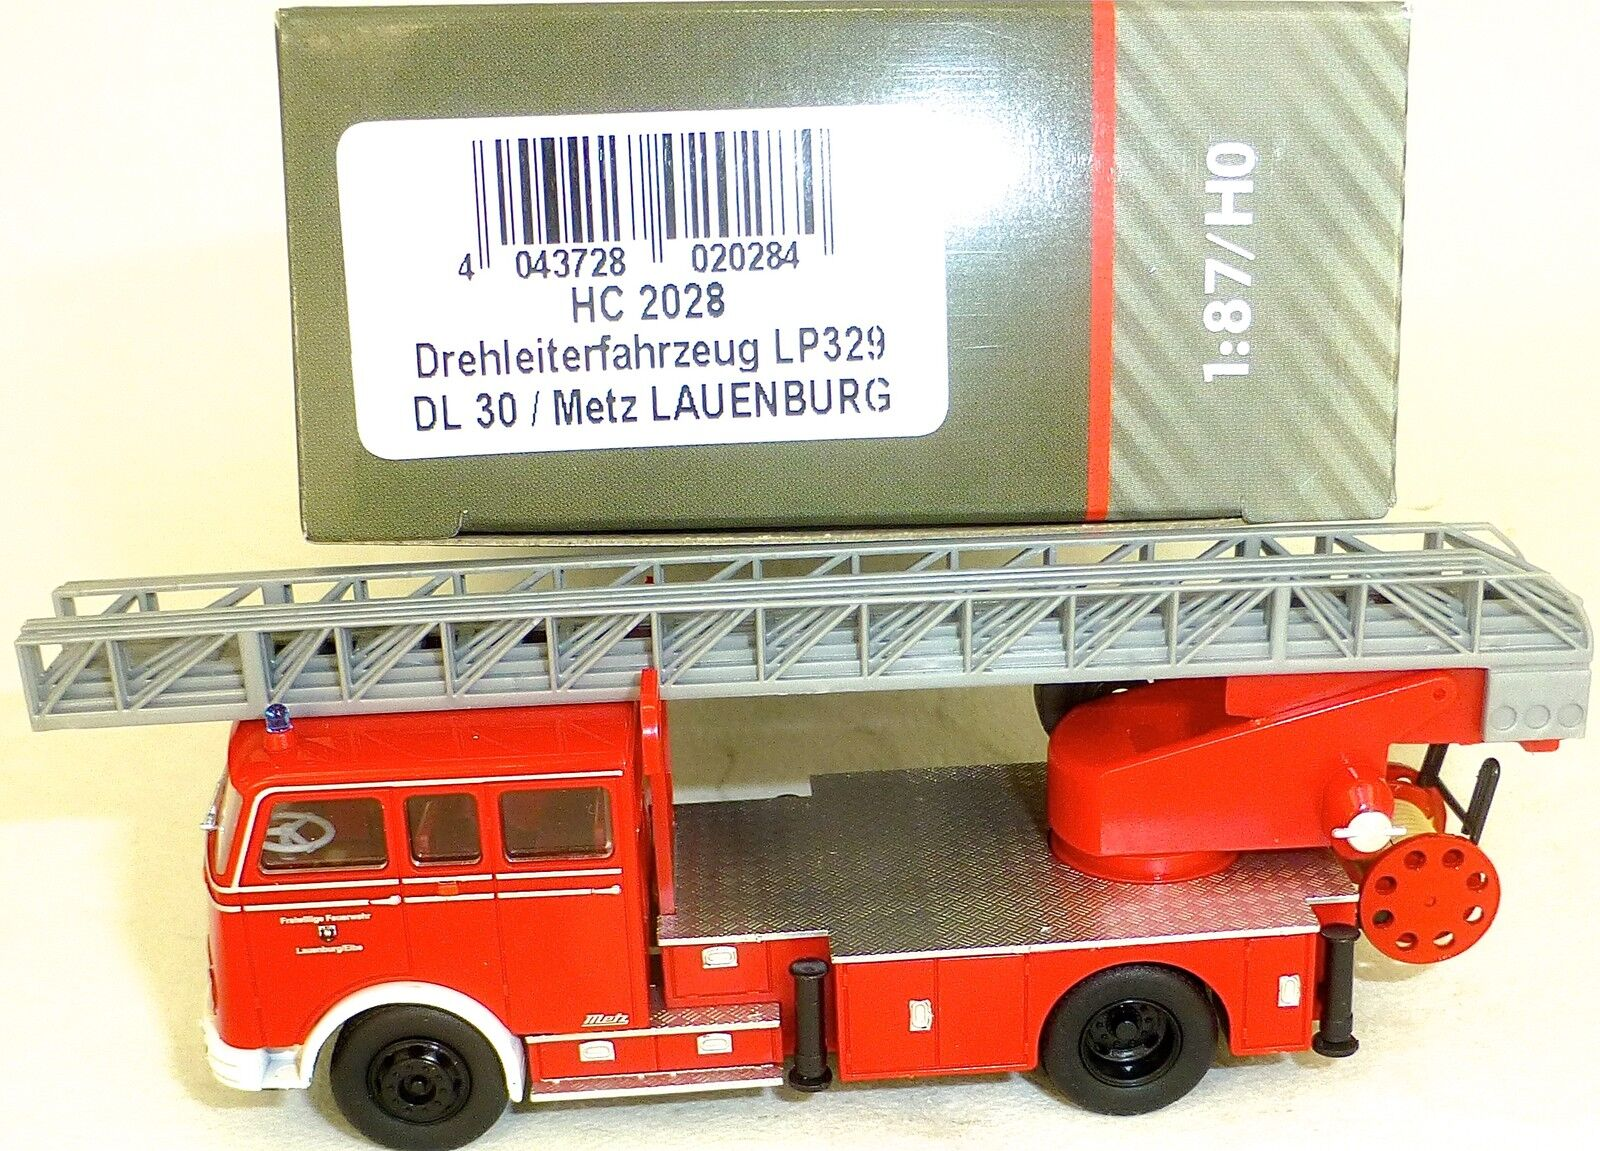 Turntable Turntable Turntable Ladder Vehicle Lp329 Dl30 Metz Lauenburg Heico Hc2028 Nip Μ f37f86